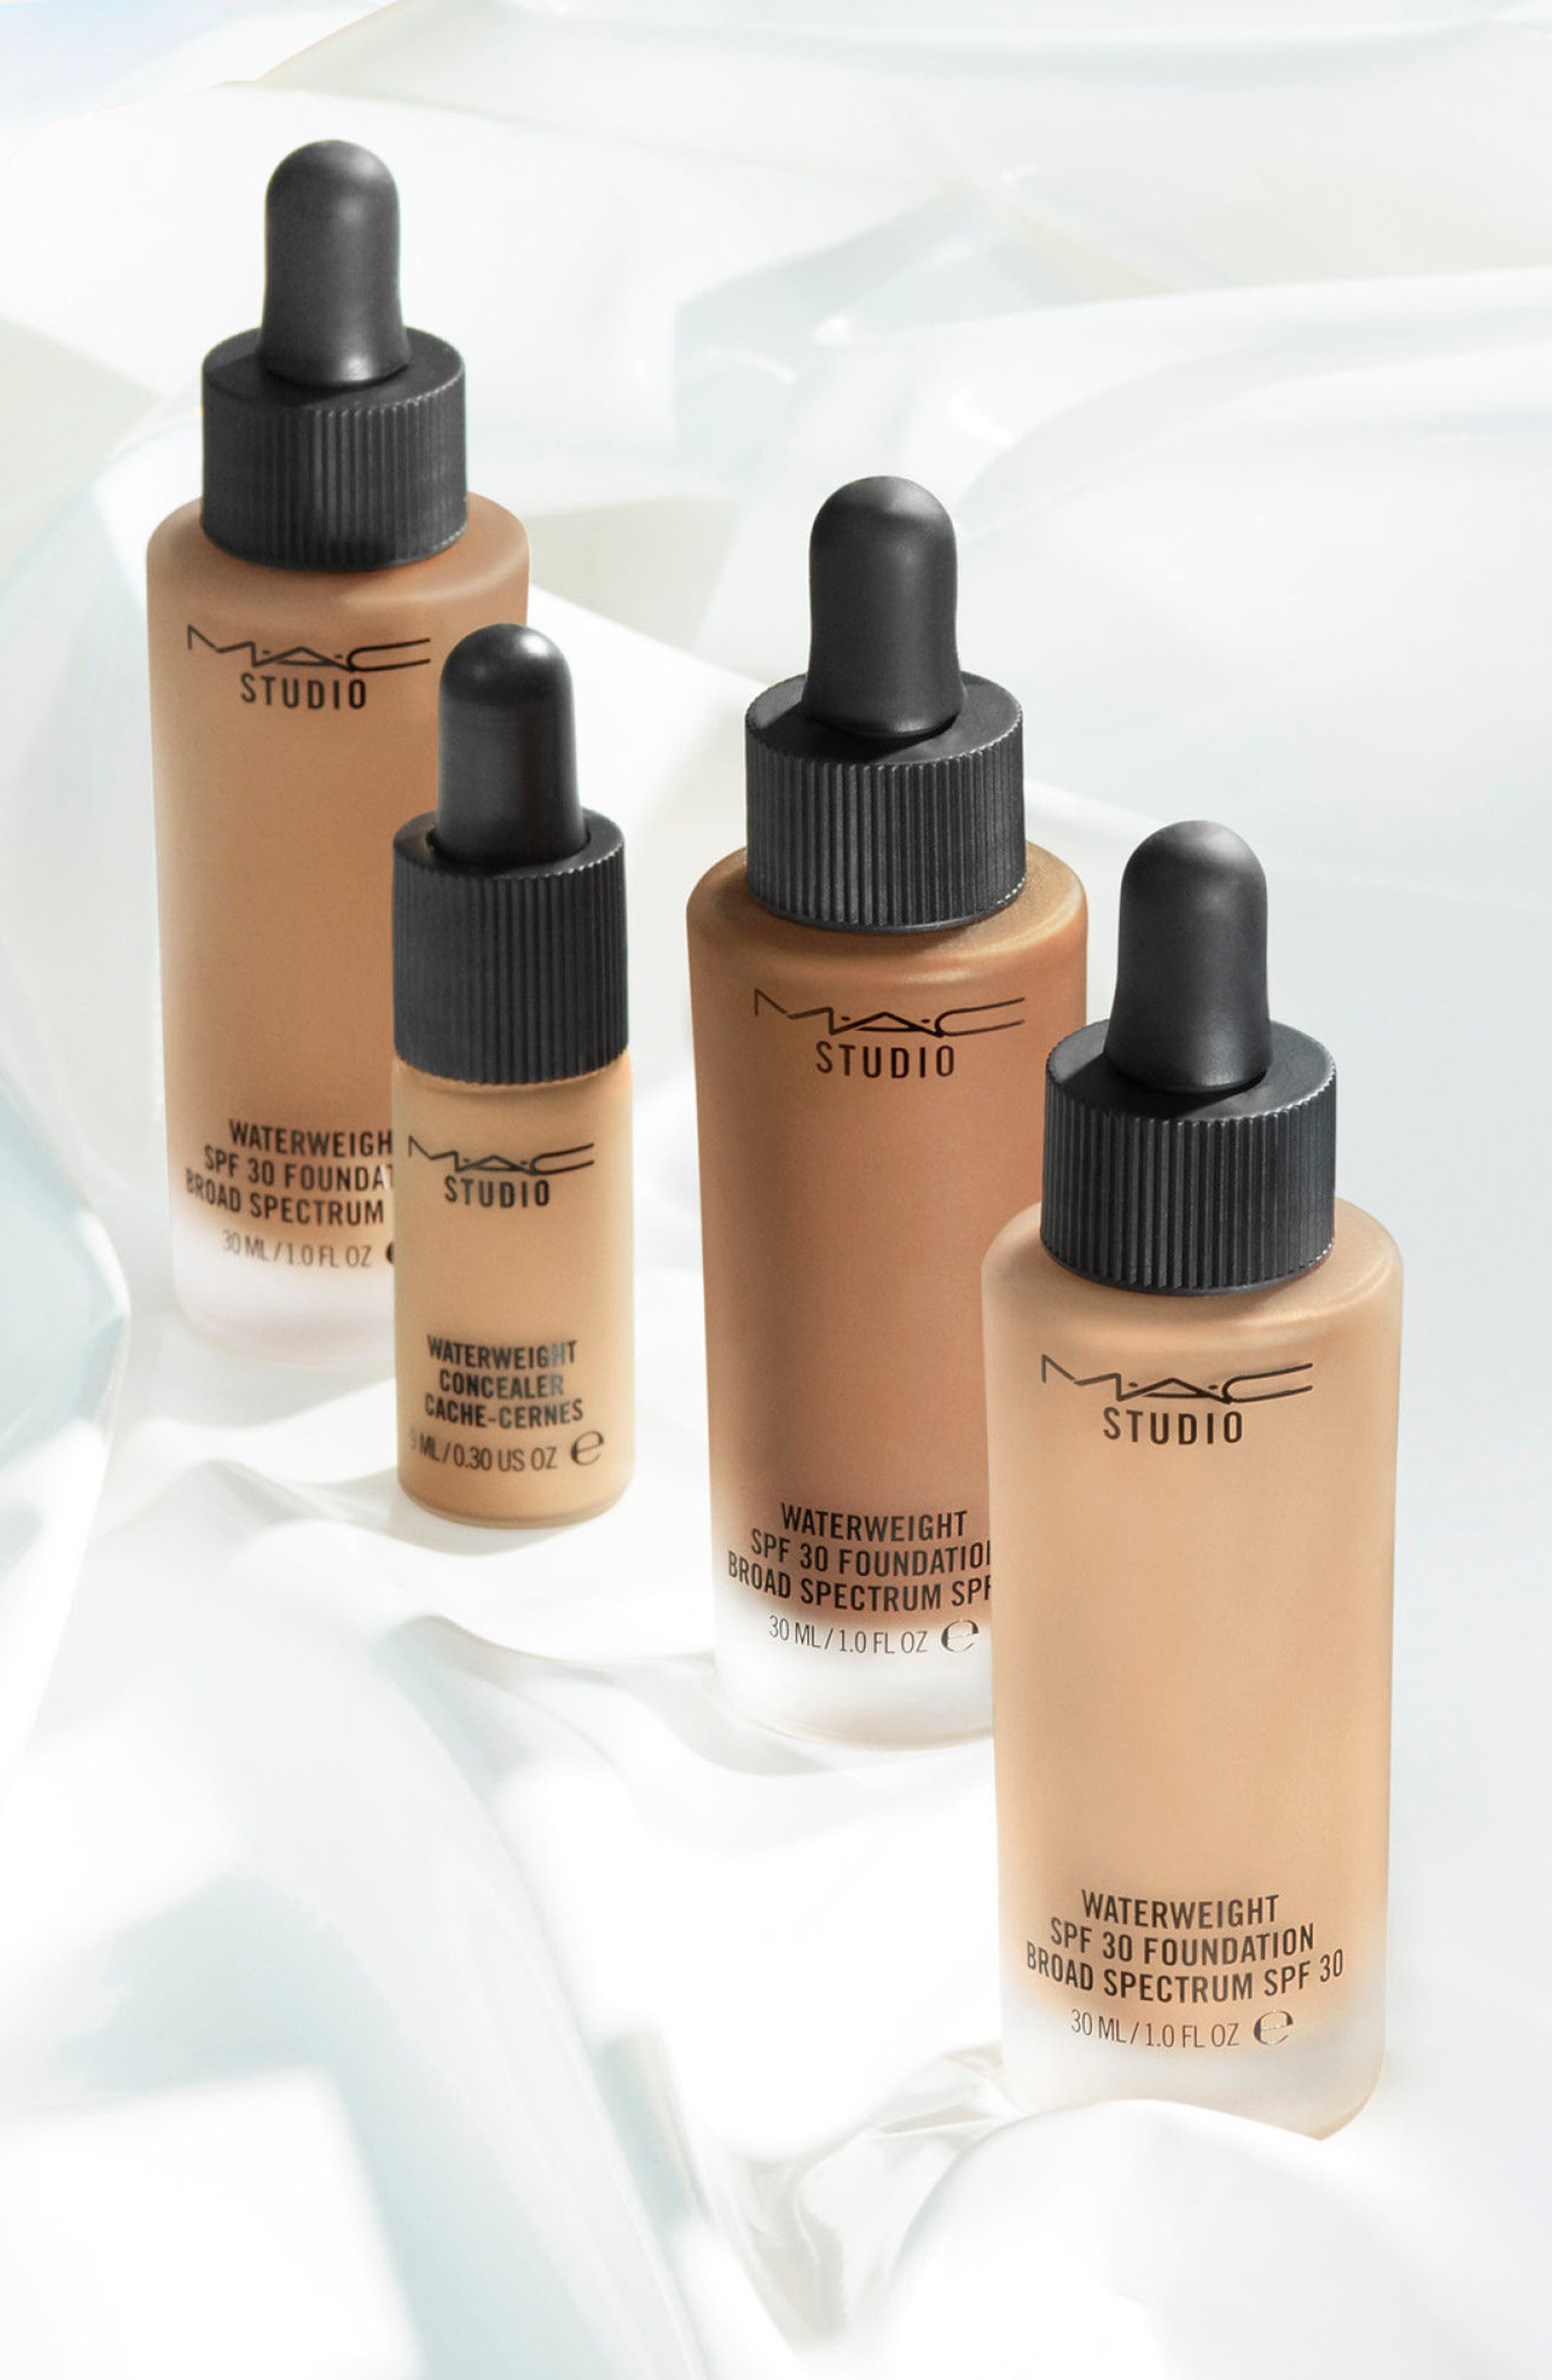 MAC M·A·C Studio Waterweight Foundation SPF 30,                             Alternate thumbnail 5, color,